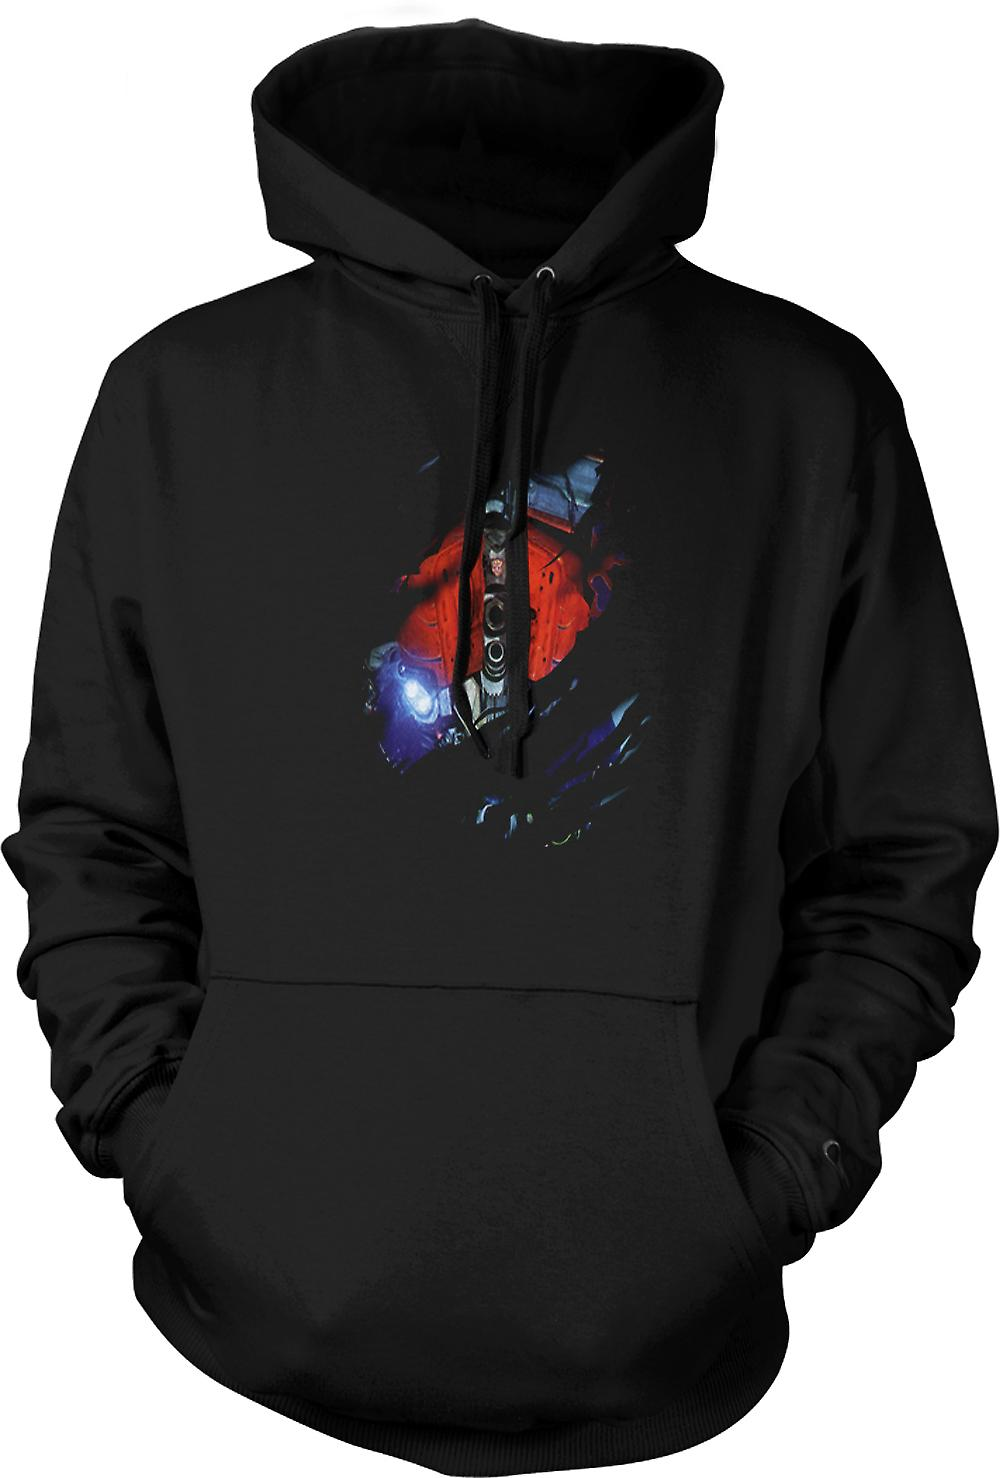 Mens Hoodie Transformers - Optimus Prime strappato Design - ispirato